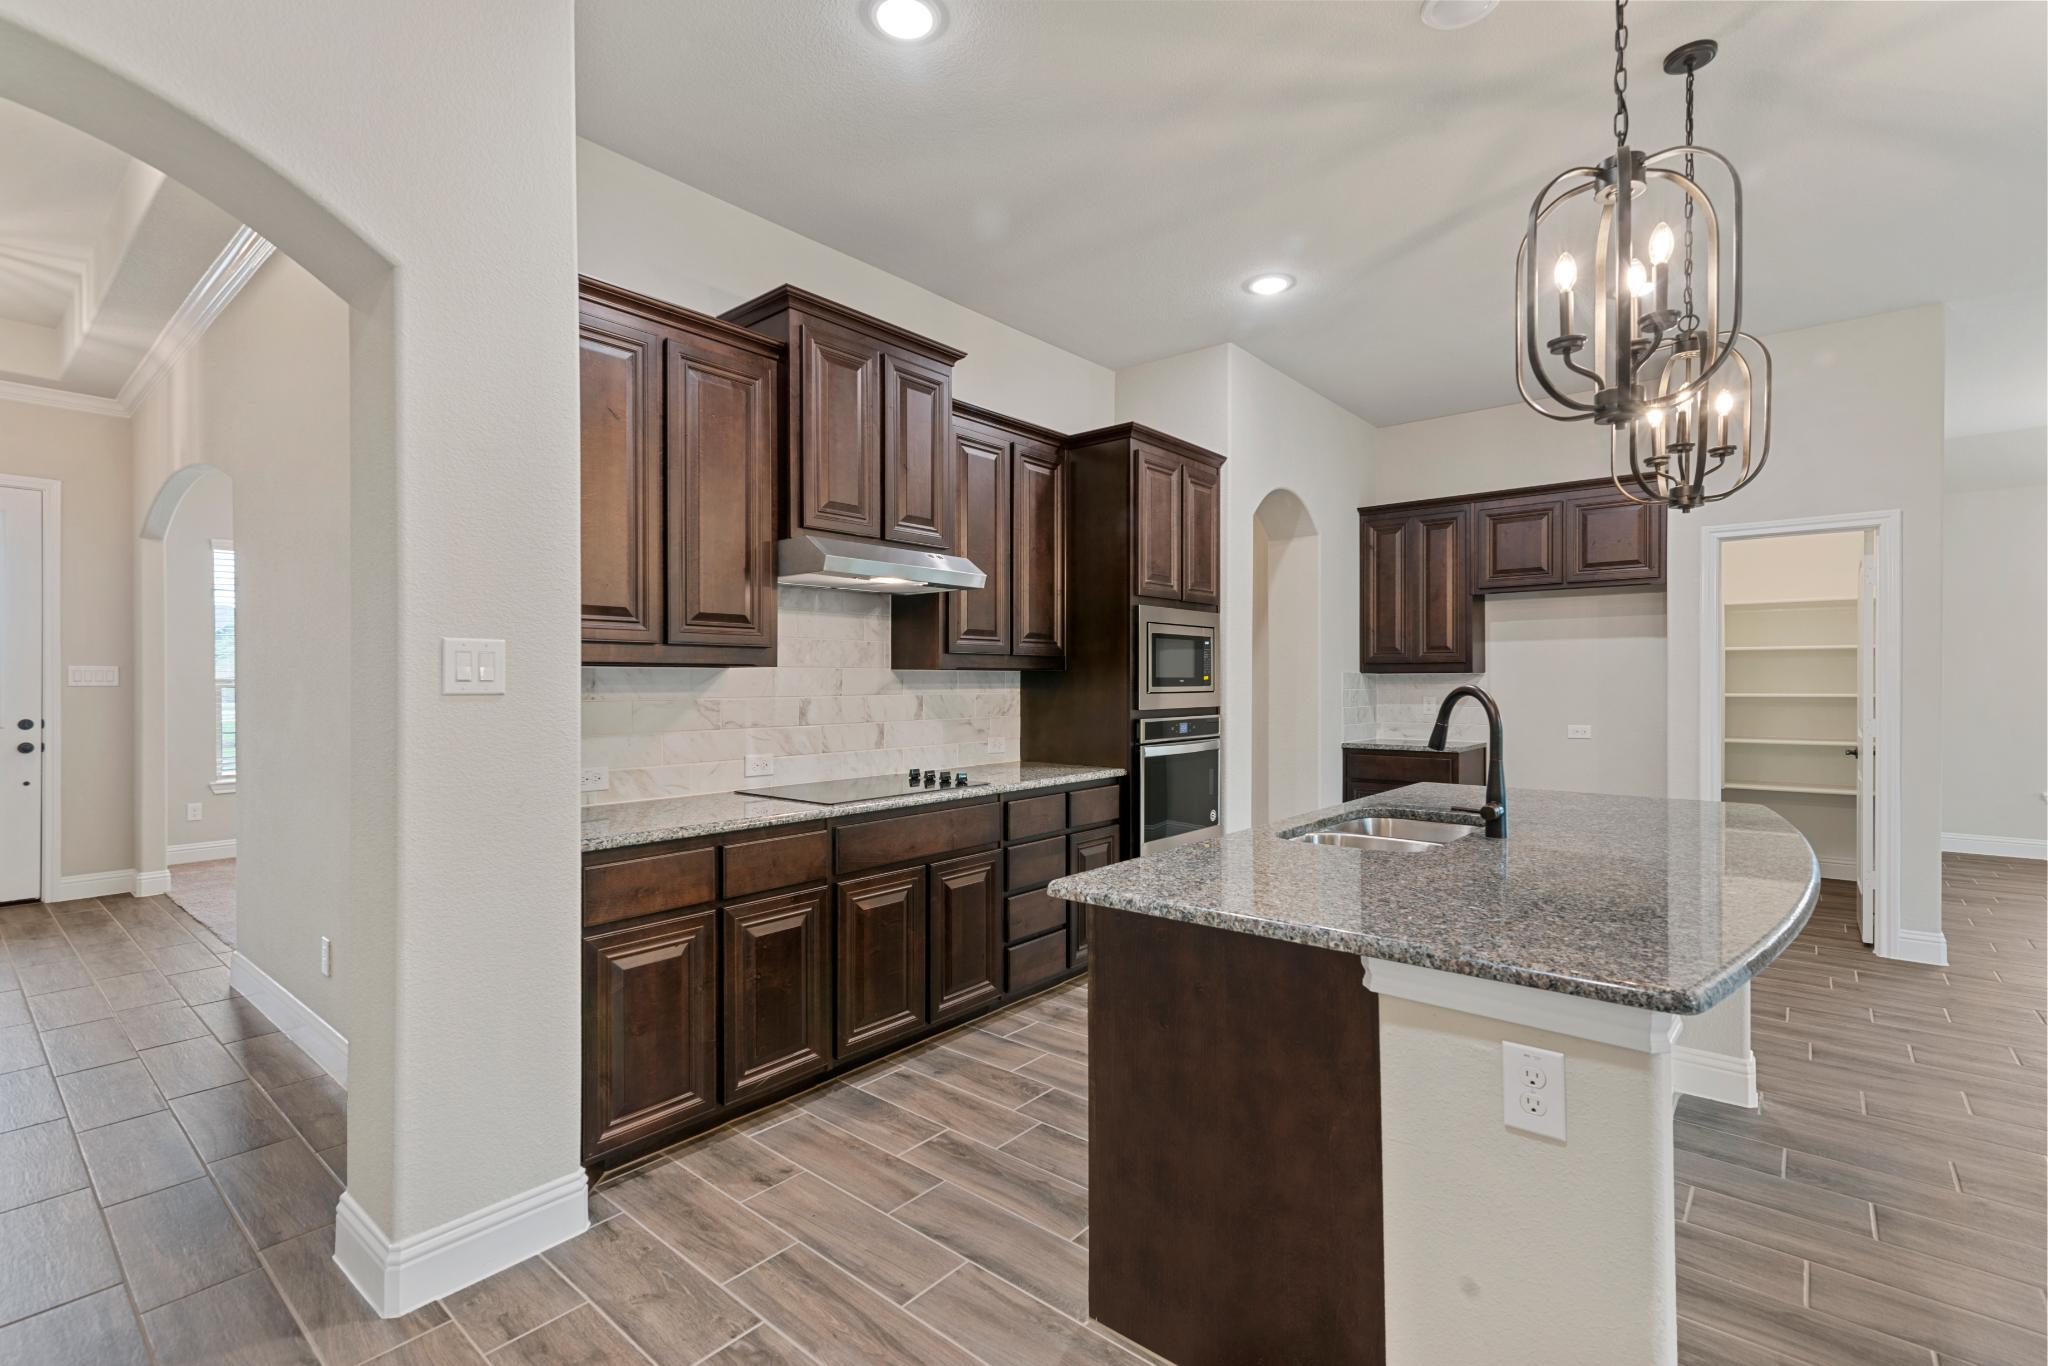 Kitchen featured in the 2404 By Antares Homes in Dallas, TX